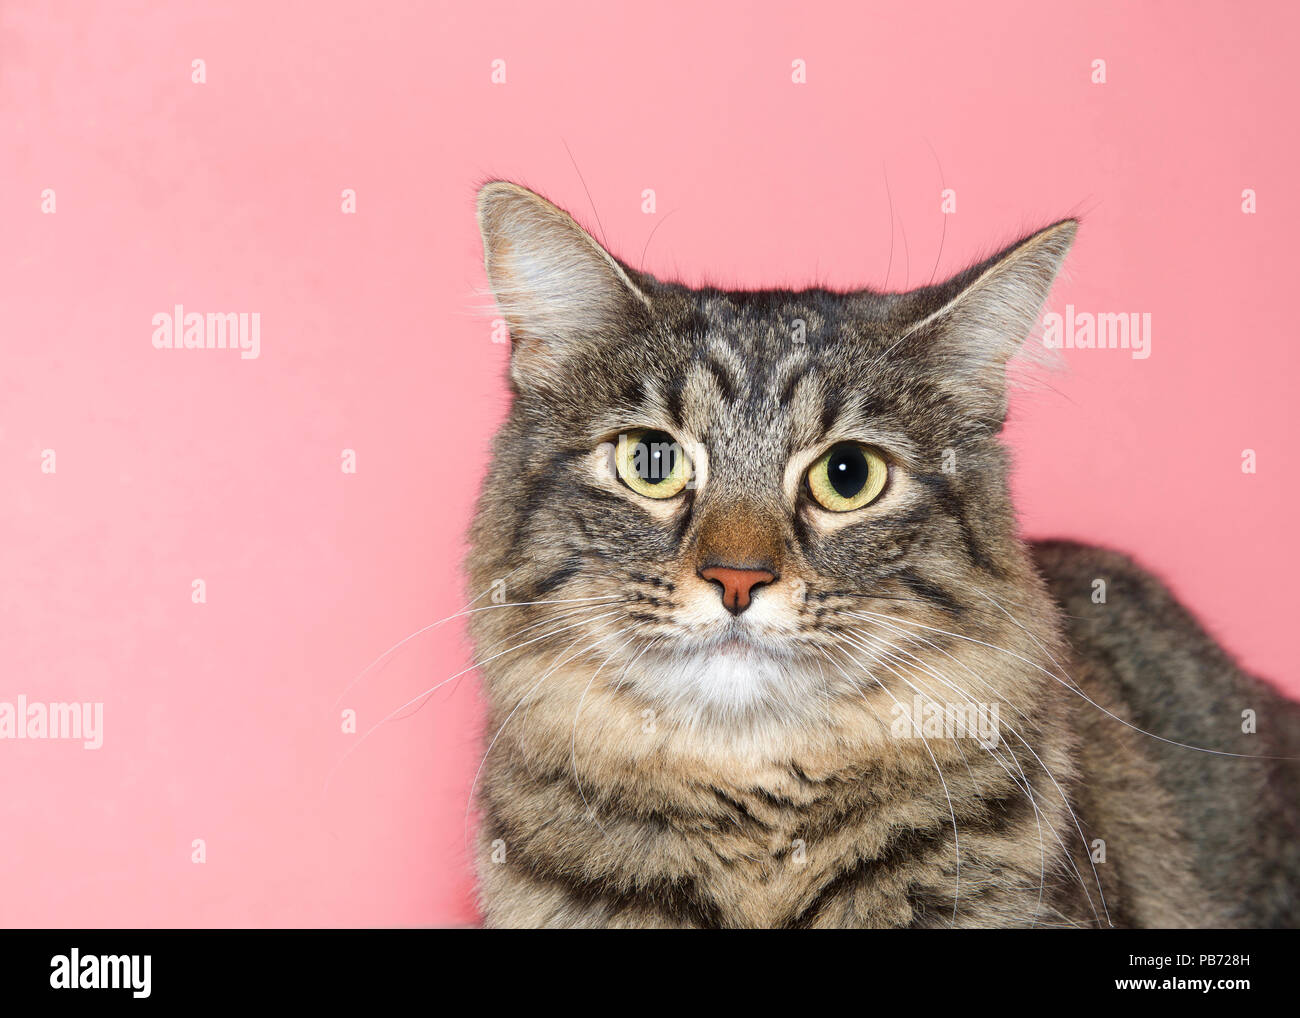 close up portrait of an adorable brown and tan tabby cat looking